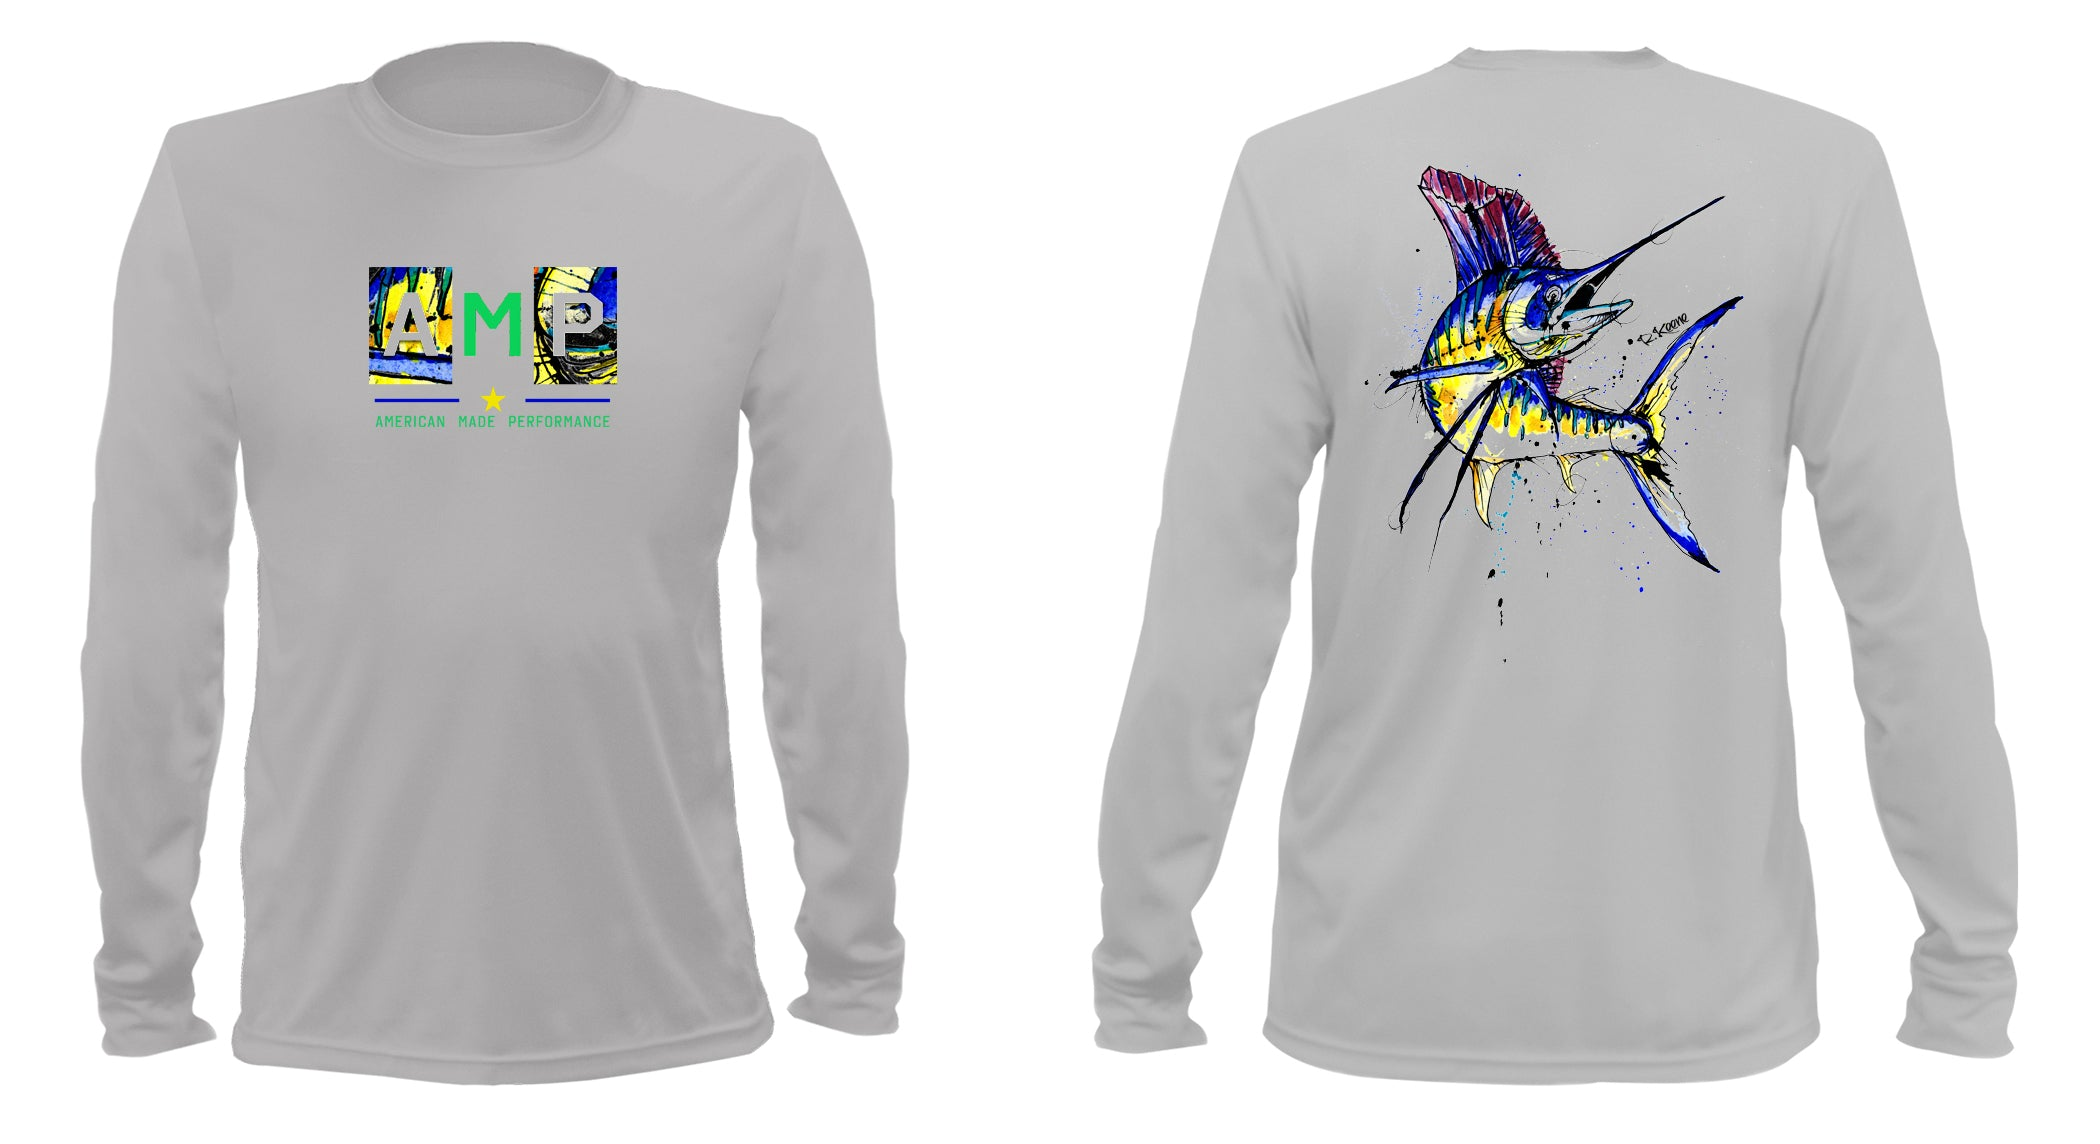 AMP Performance Long Sleeve - Sailfish